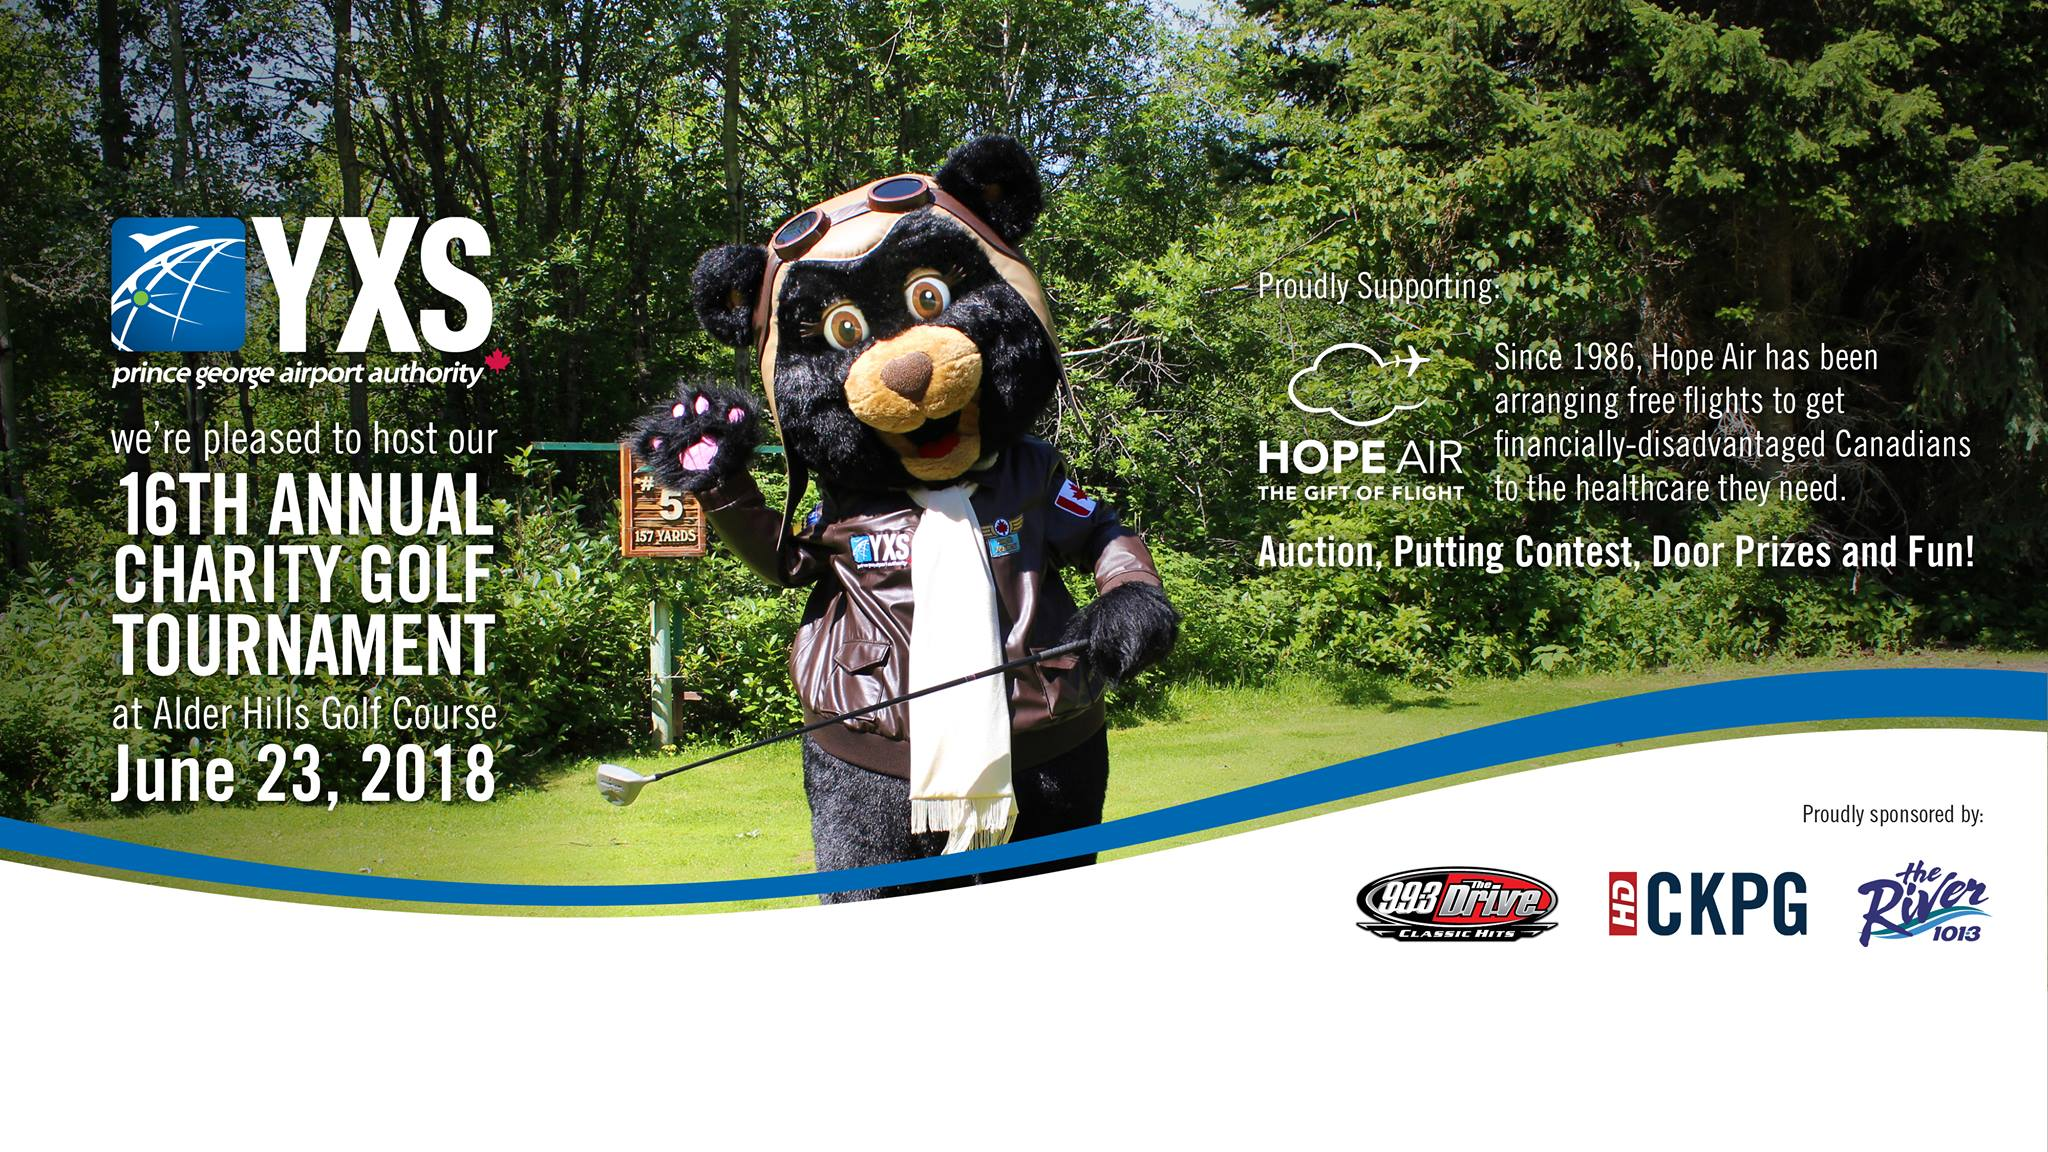 Prince George Airport Authority's 16th Annual Charity Golf Tournament